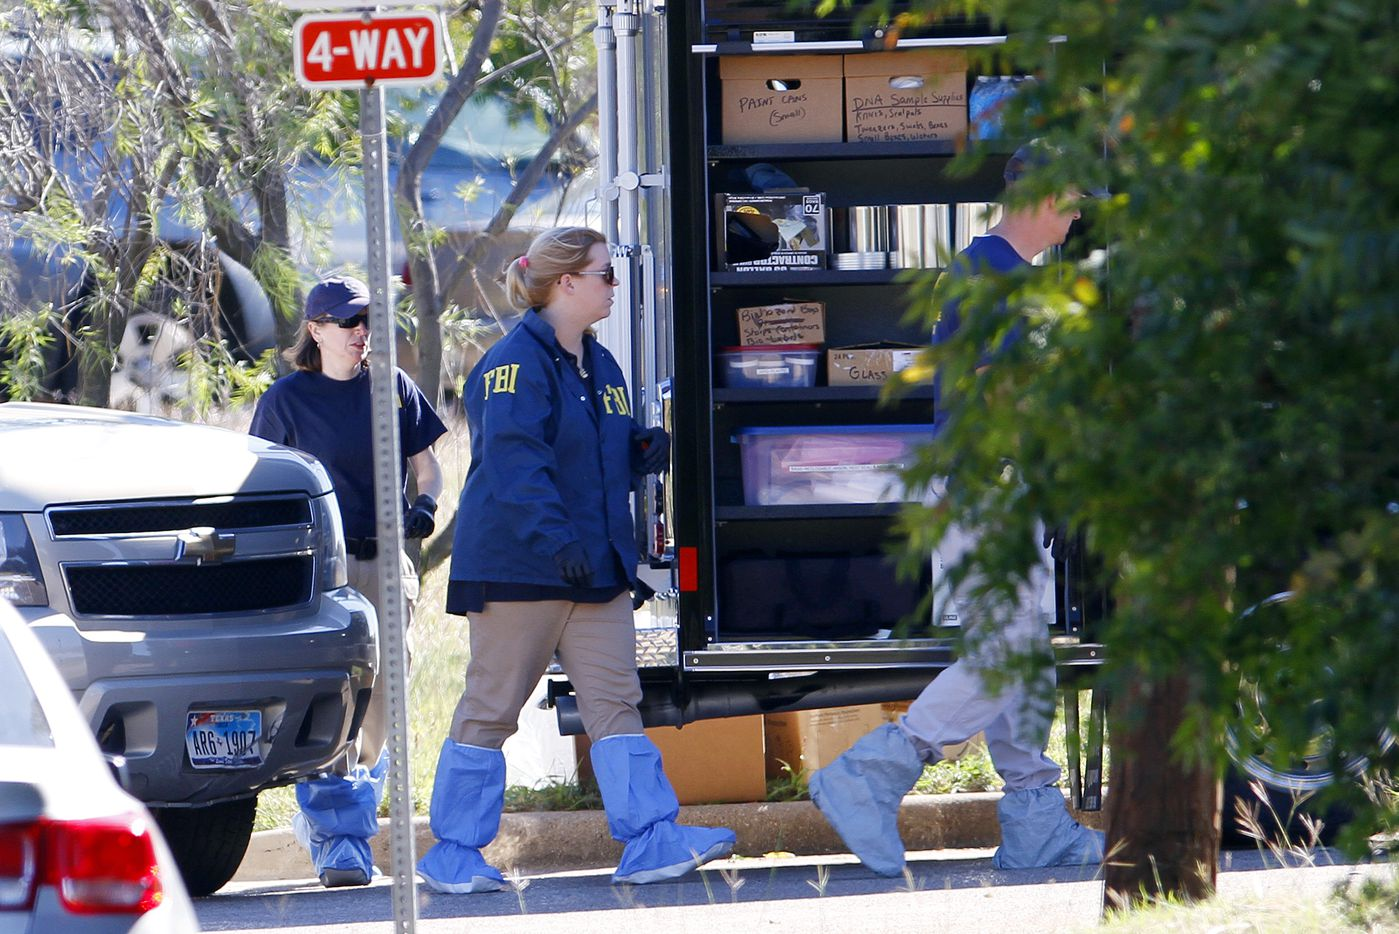 FBI investigators get dressed in protective suits as they work a crime scene where the body of a child was found near the home of missing girl Sherin Mathews, Sunday, Oct. 22, 2017. Ben Torres/Special Contributor